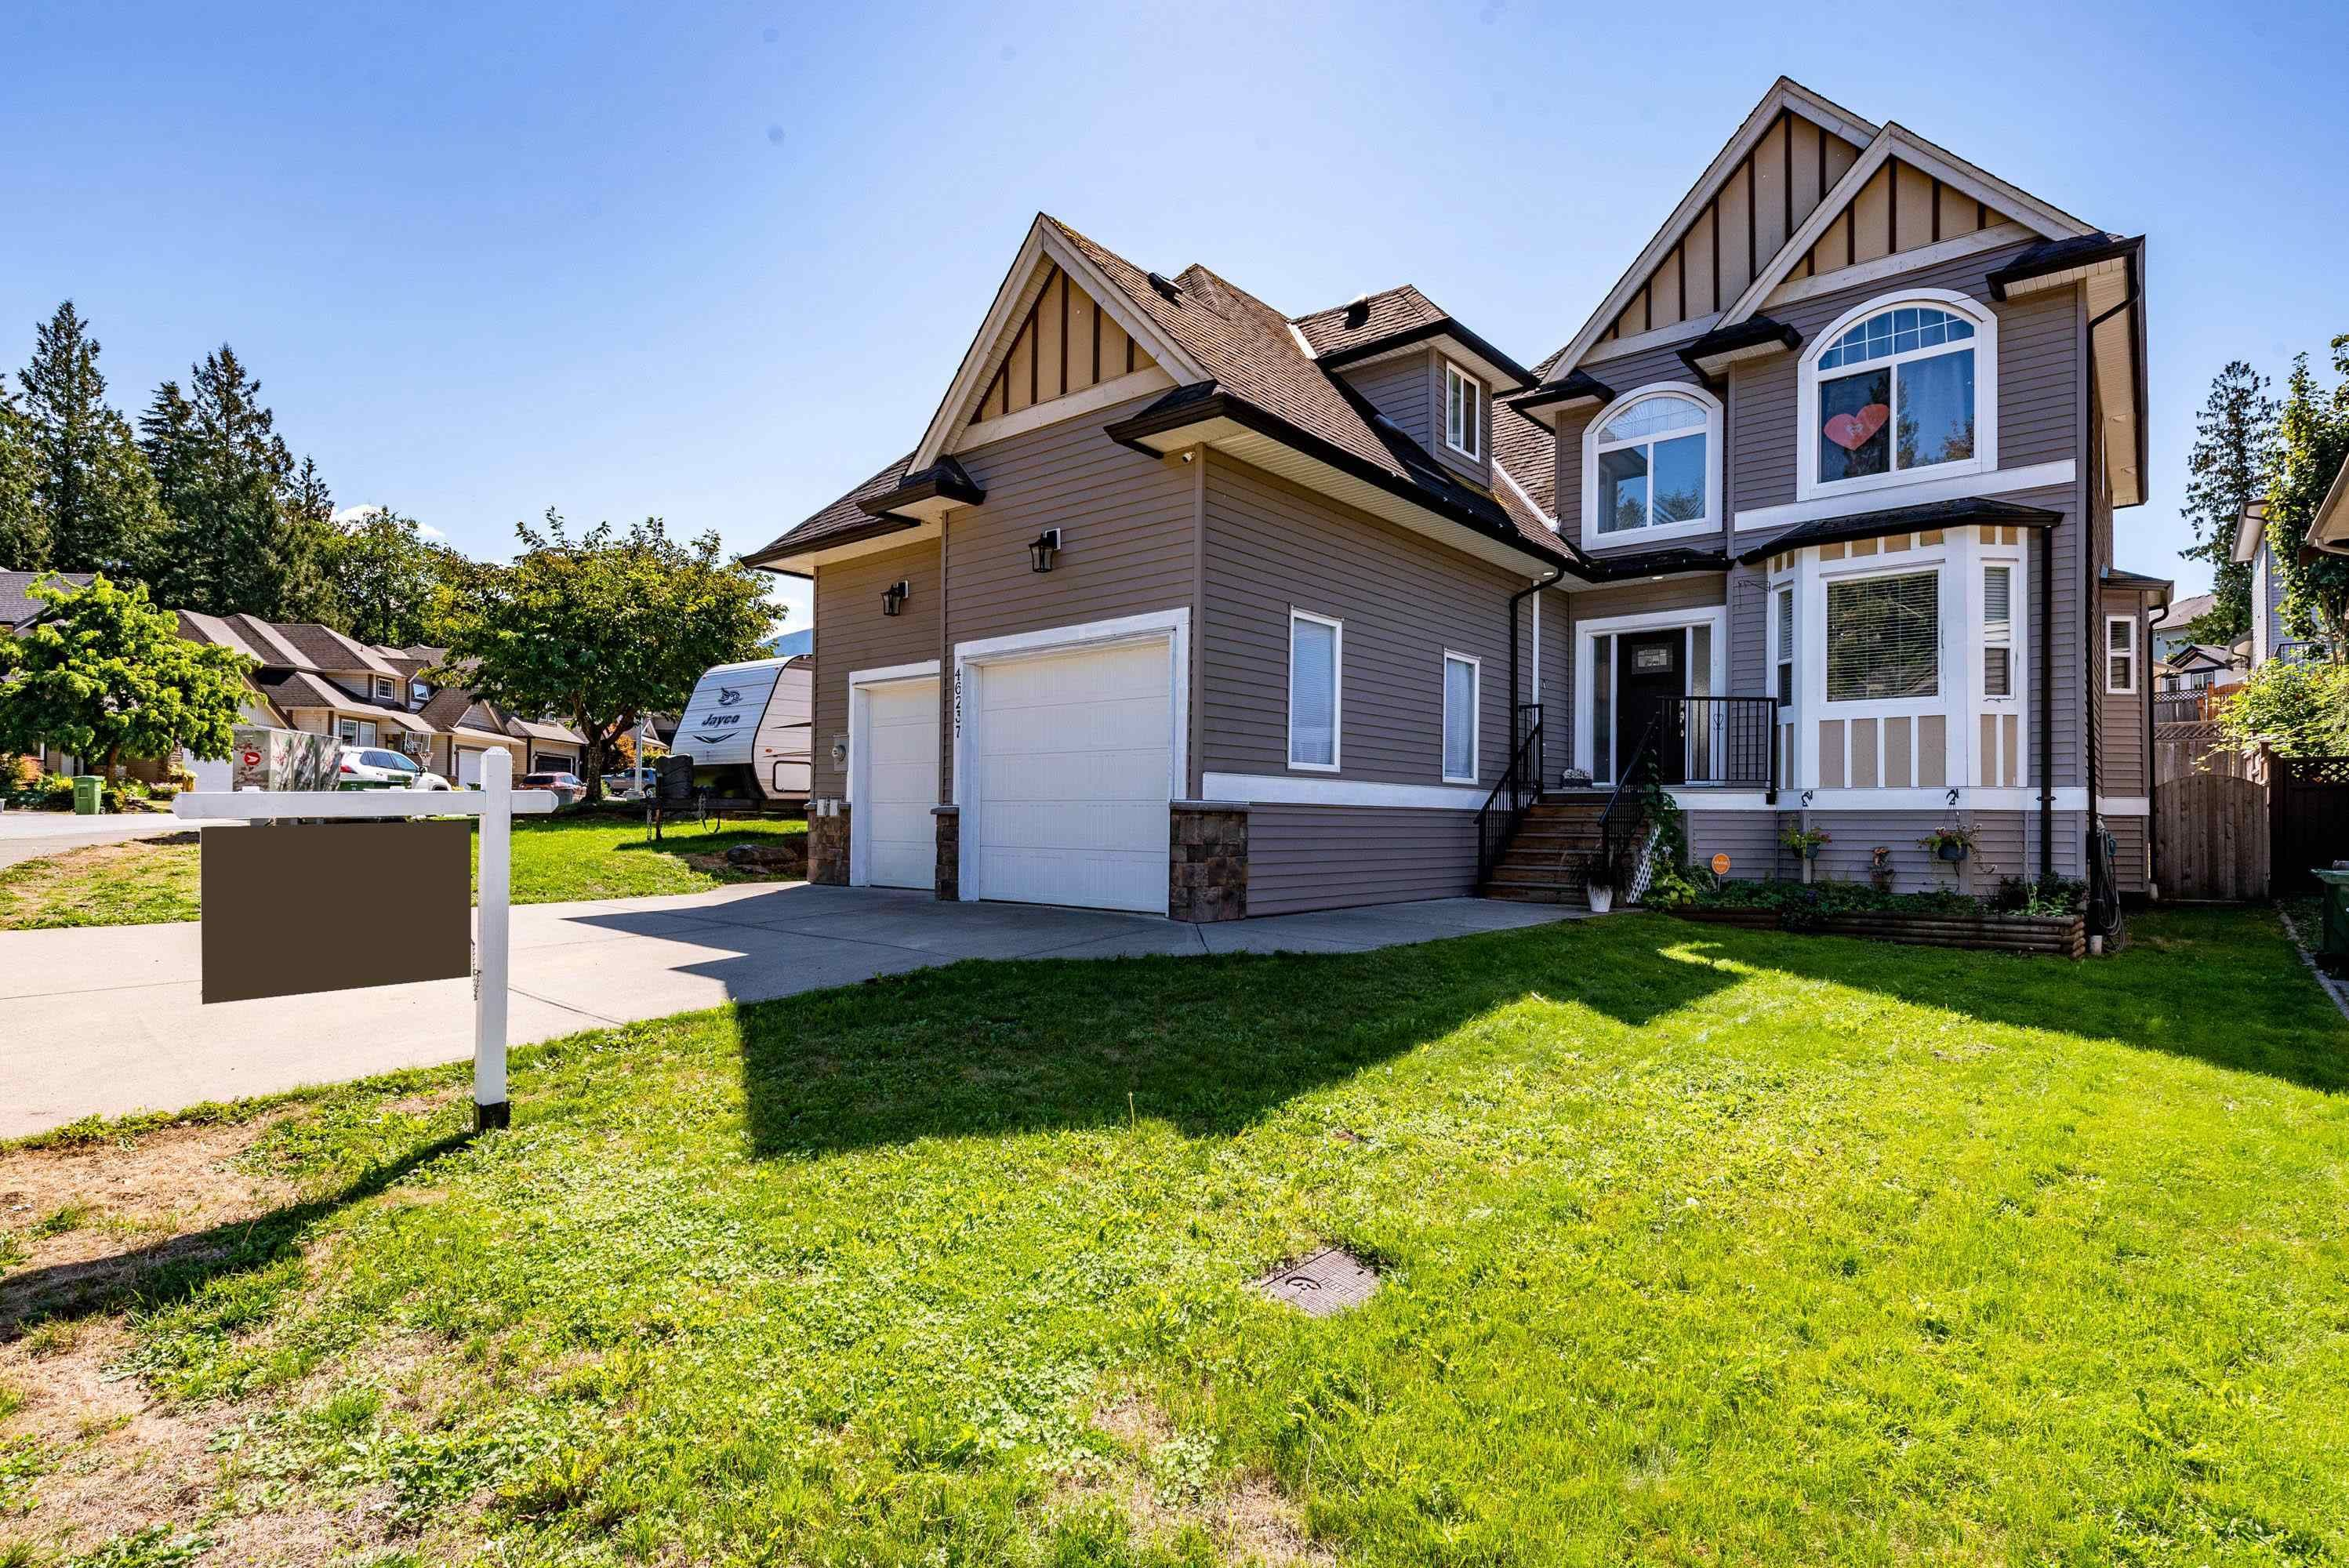 Main Photo: 46237 KERMODE Crescent in Chilliwack: Promontory House for sale (Sardis)  : MLS®# R2614159